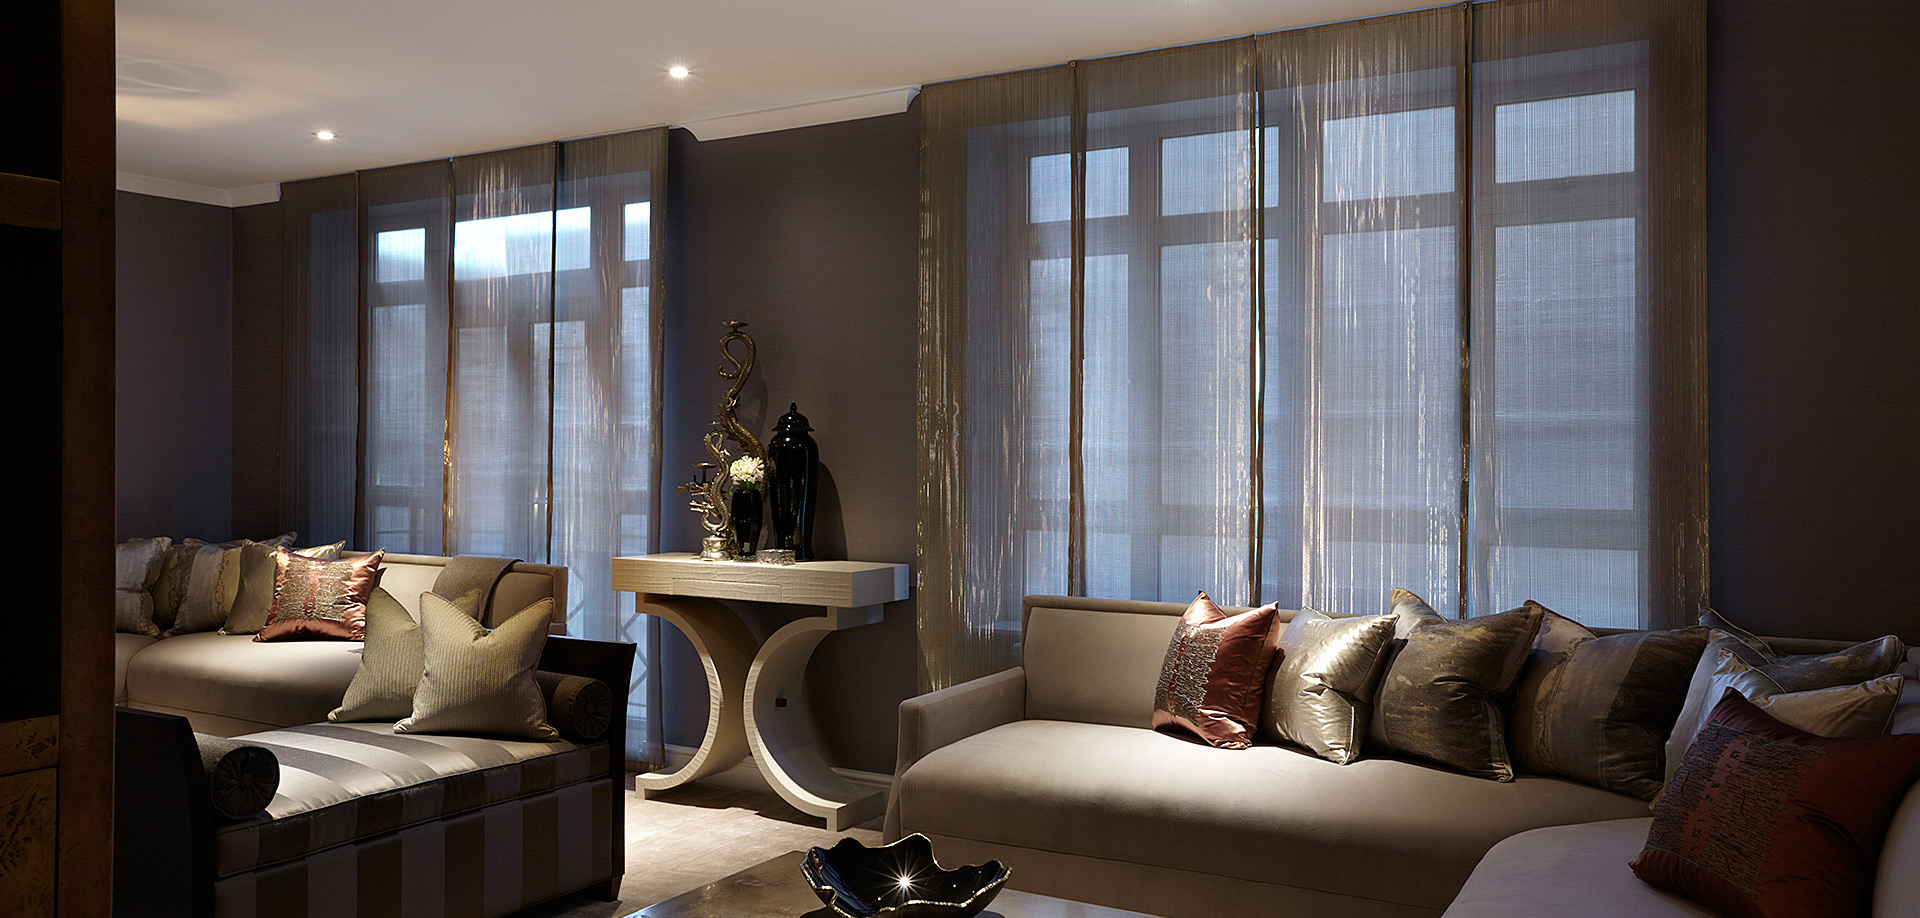 Sophie-Mallebranche-Residential-Window-Treatment-Sliding-Panels-London